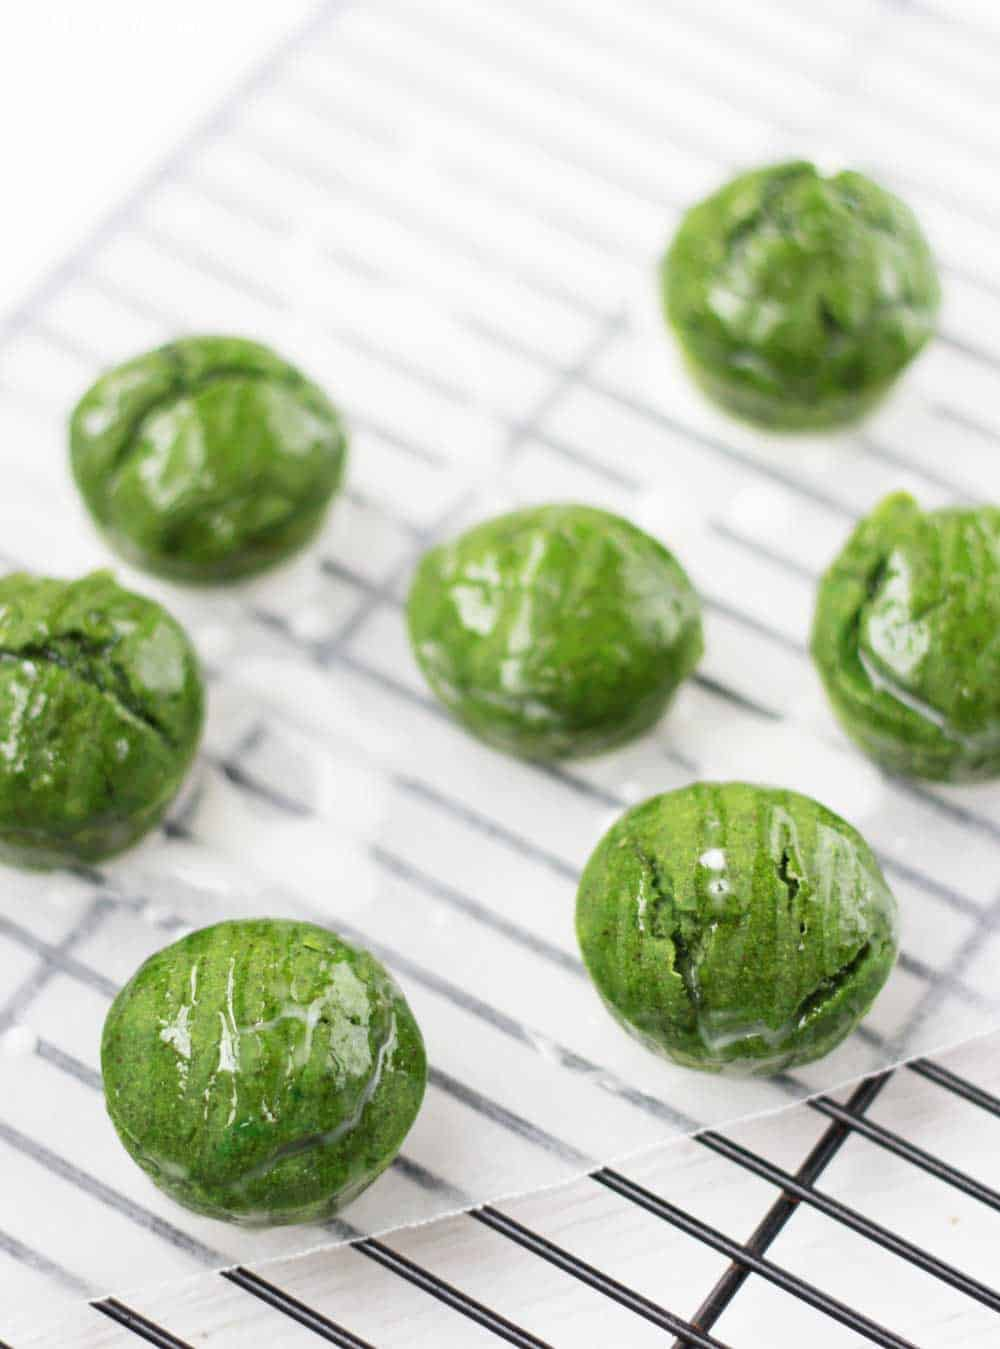 My family loves these green muffins! They're packed with spinach, banana and other healthy ingredients! Also called monster muffins or hulk muffins - they are a great on-the-go breakfast!